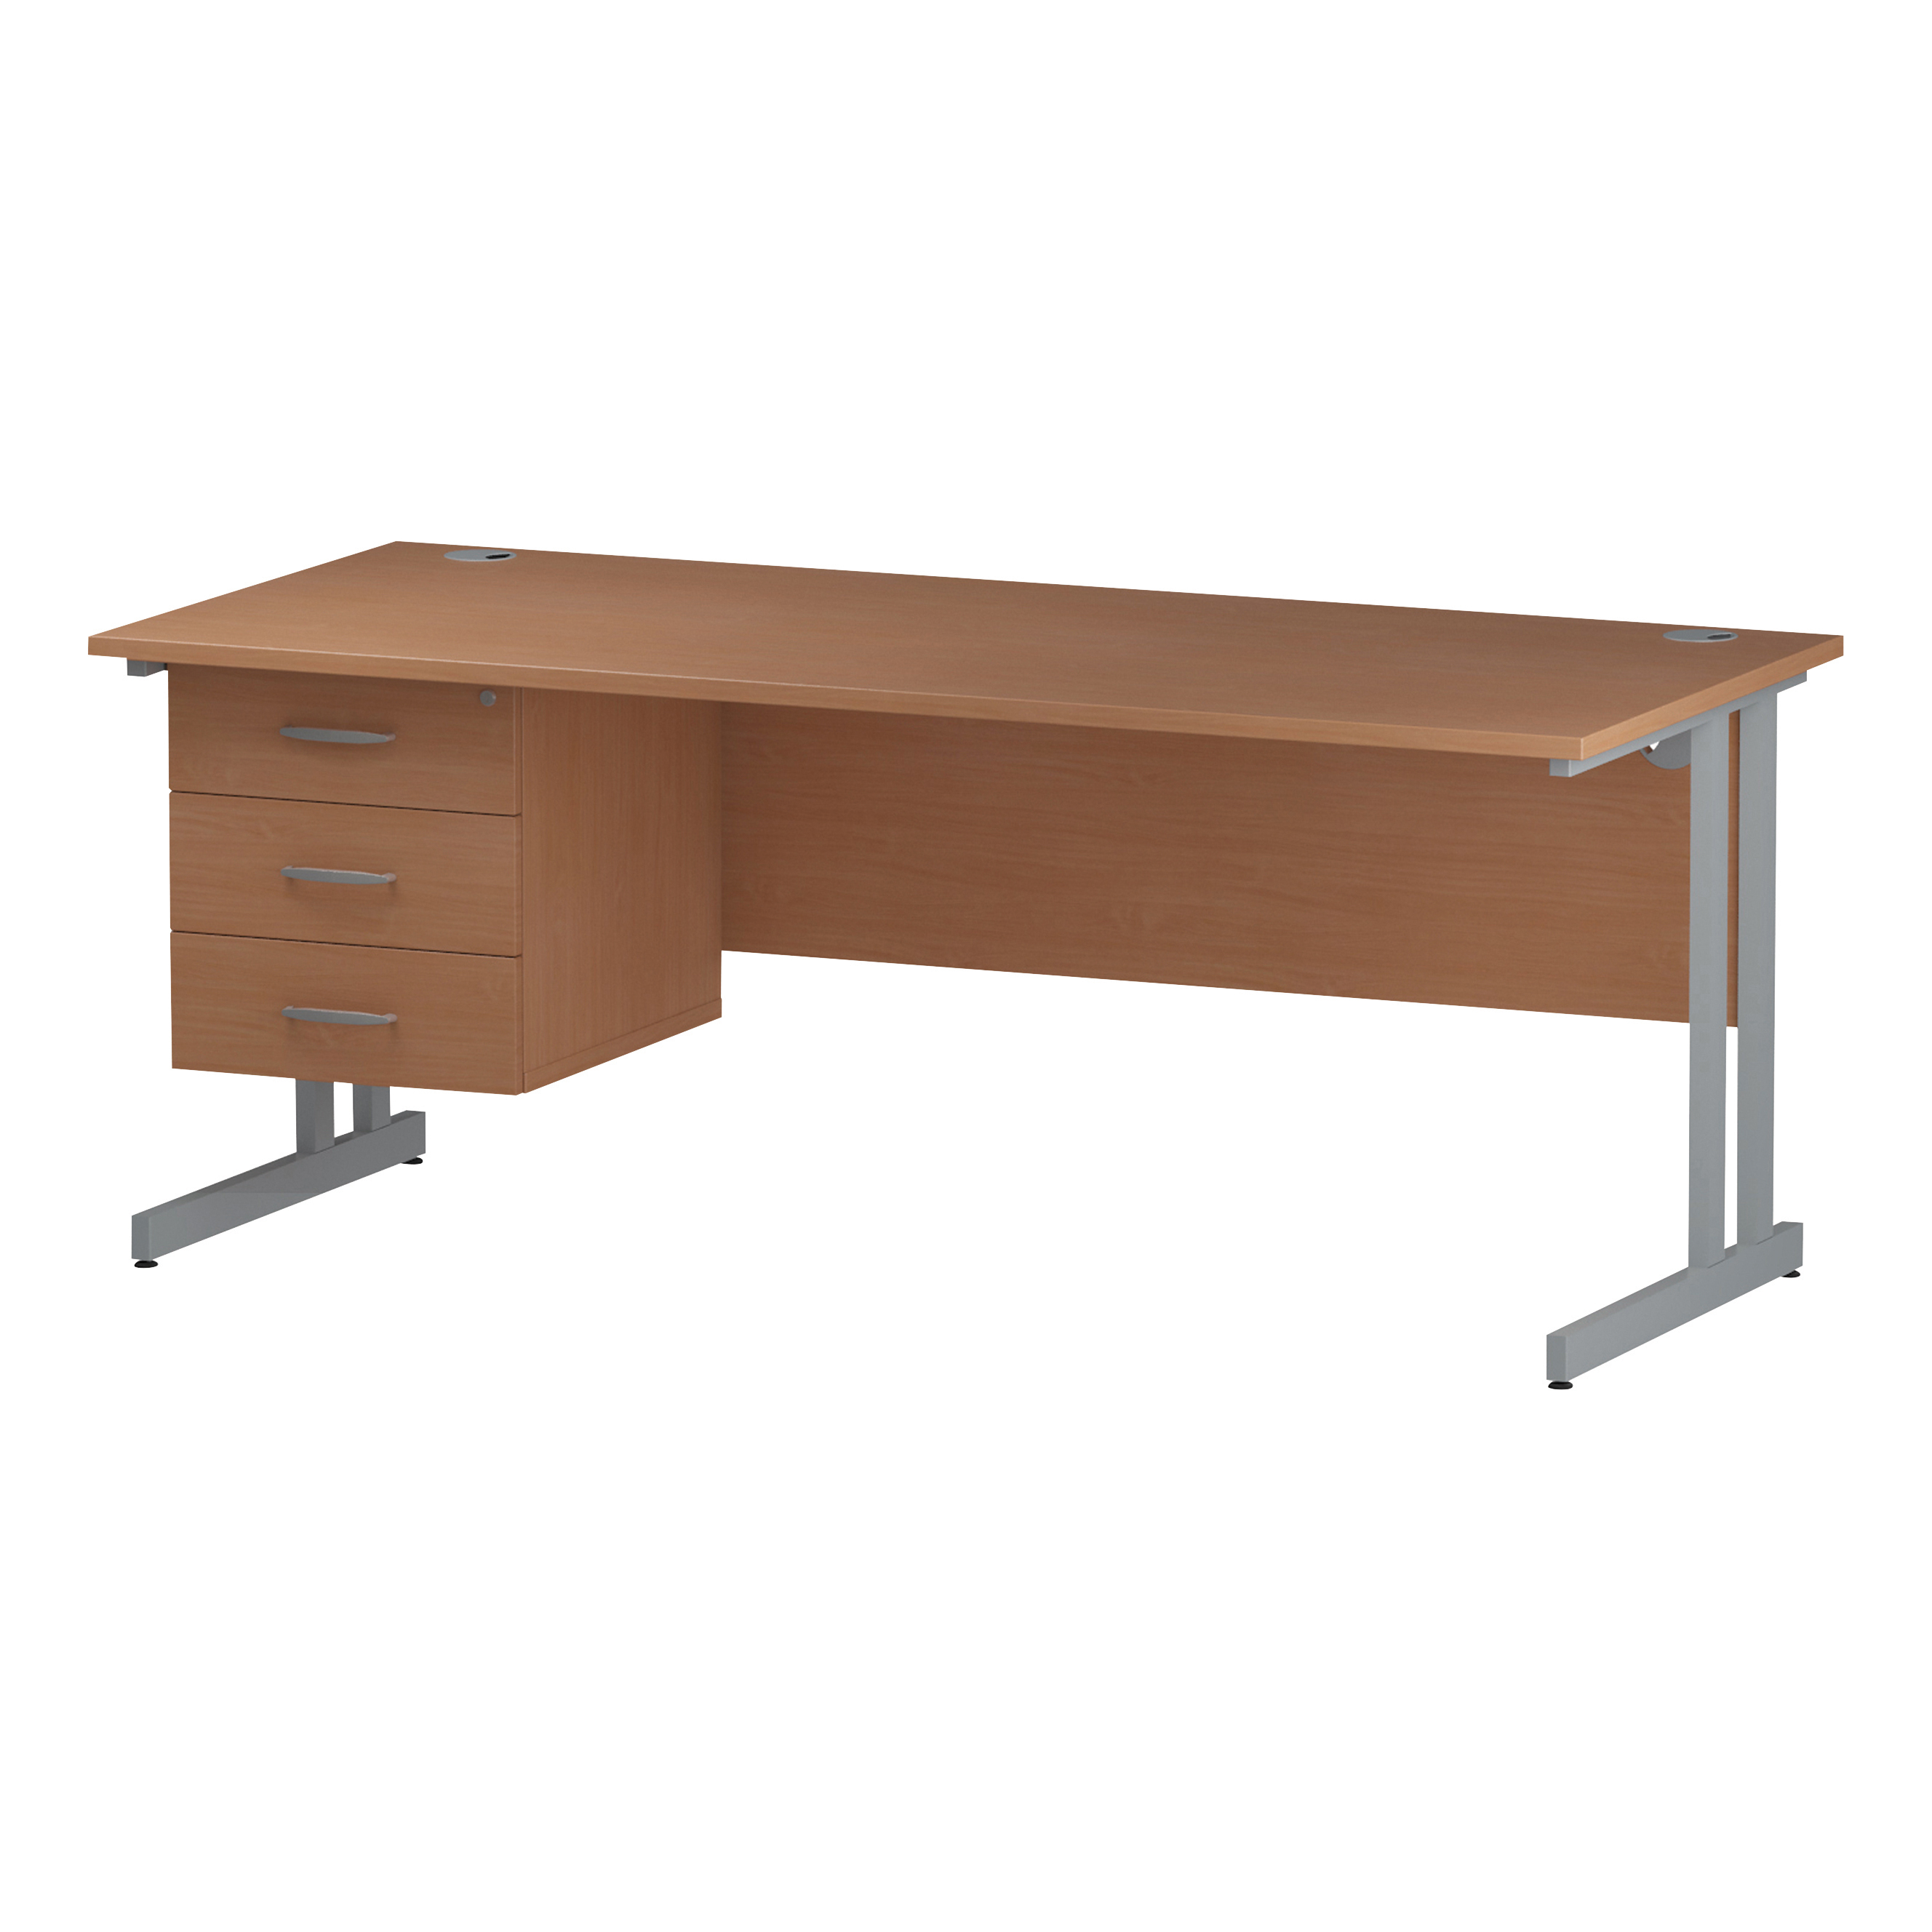 Trexus Rectangular Desk Silver Cantilever Leg 1800x800mm Fixed Pedestal 3 Drawers Beech Ref I001699